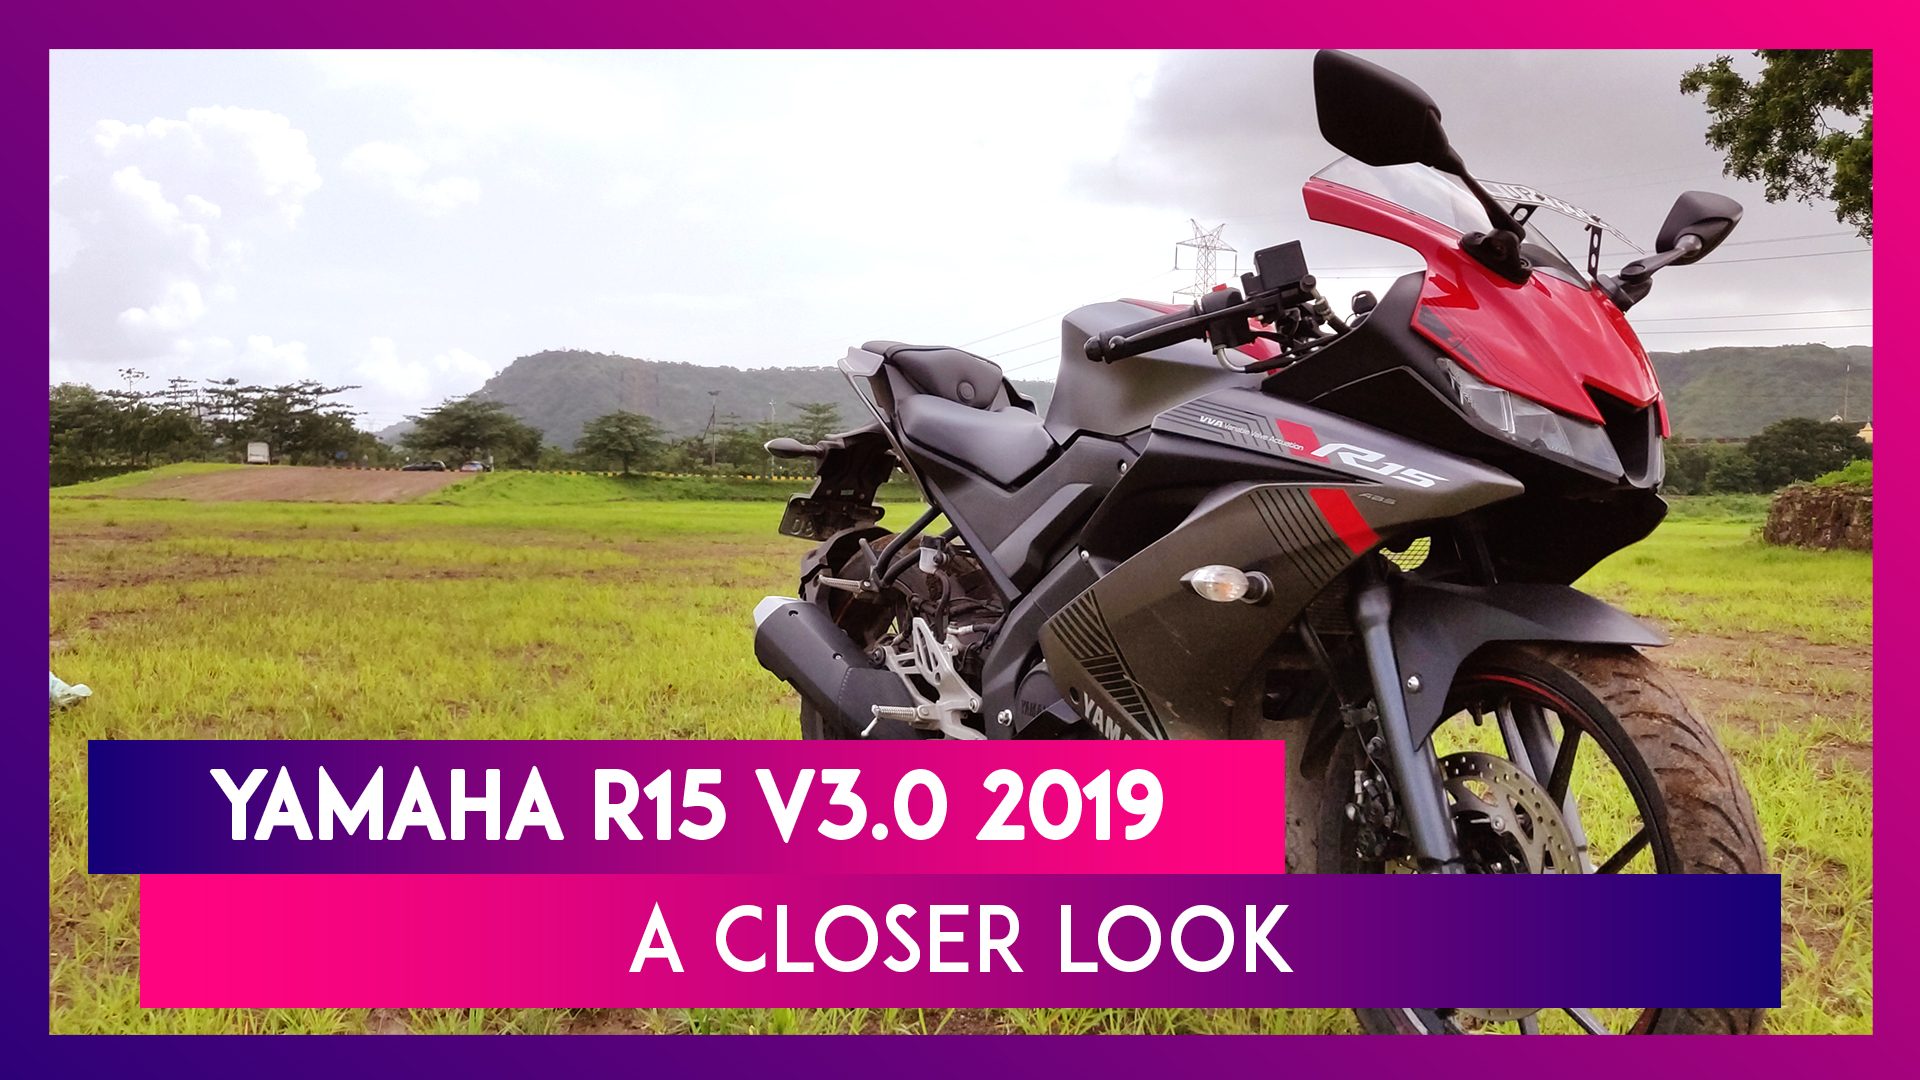 Yamaha R15 V3.0 ABS Review: Here's A Closer Look At This Feature Loaded Bike